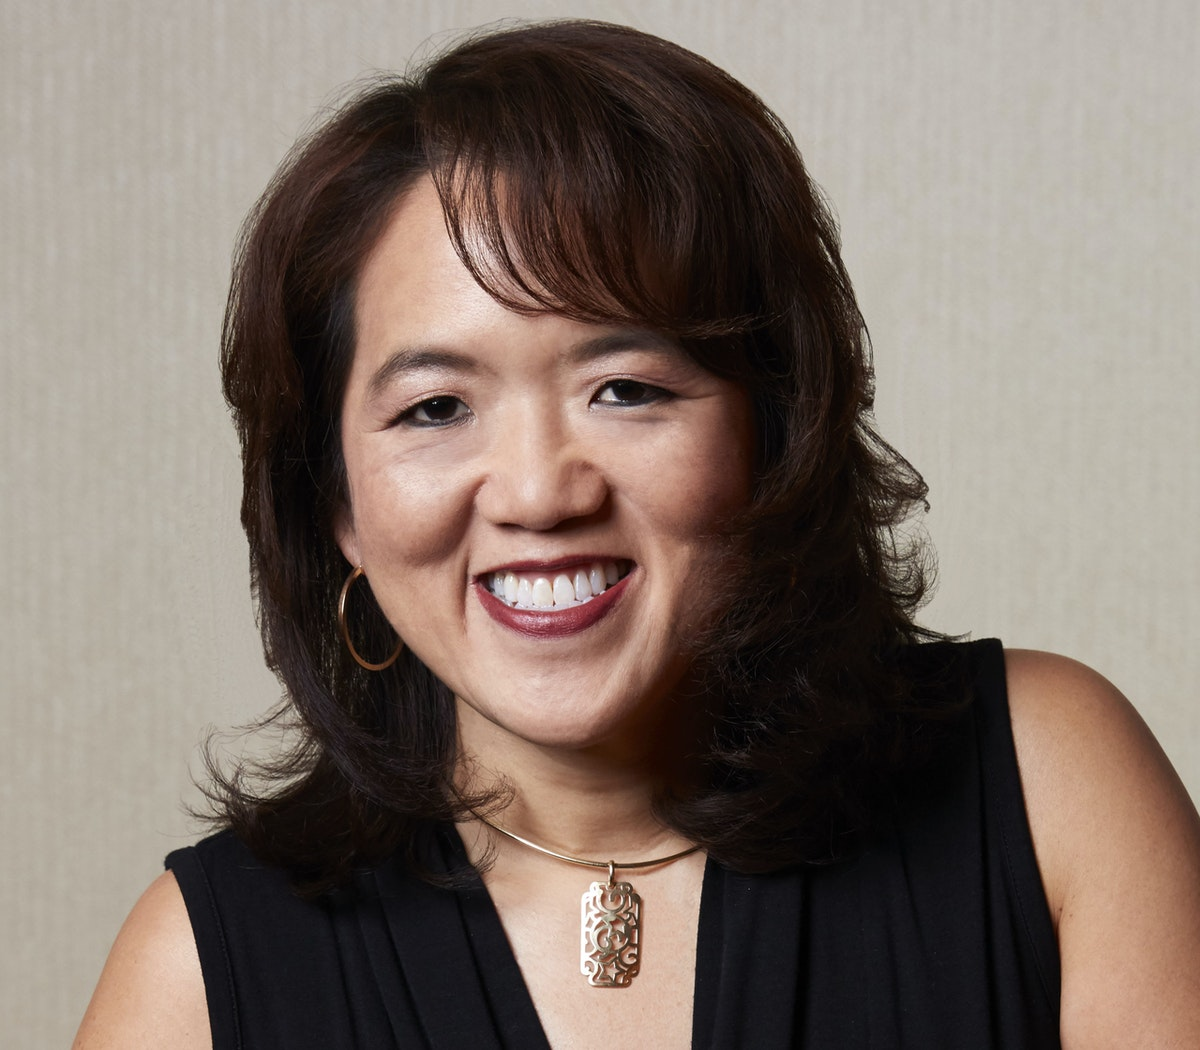 Anne Chow United Way of Metropolitan Dallas 2020-2021 chair